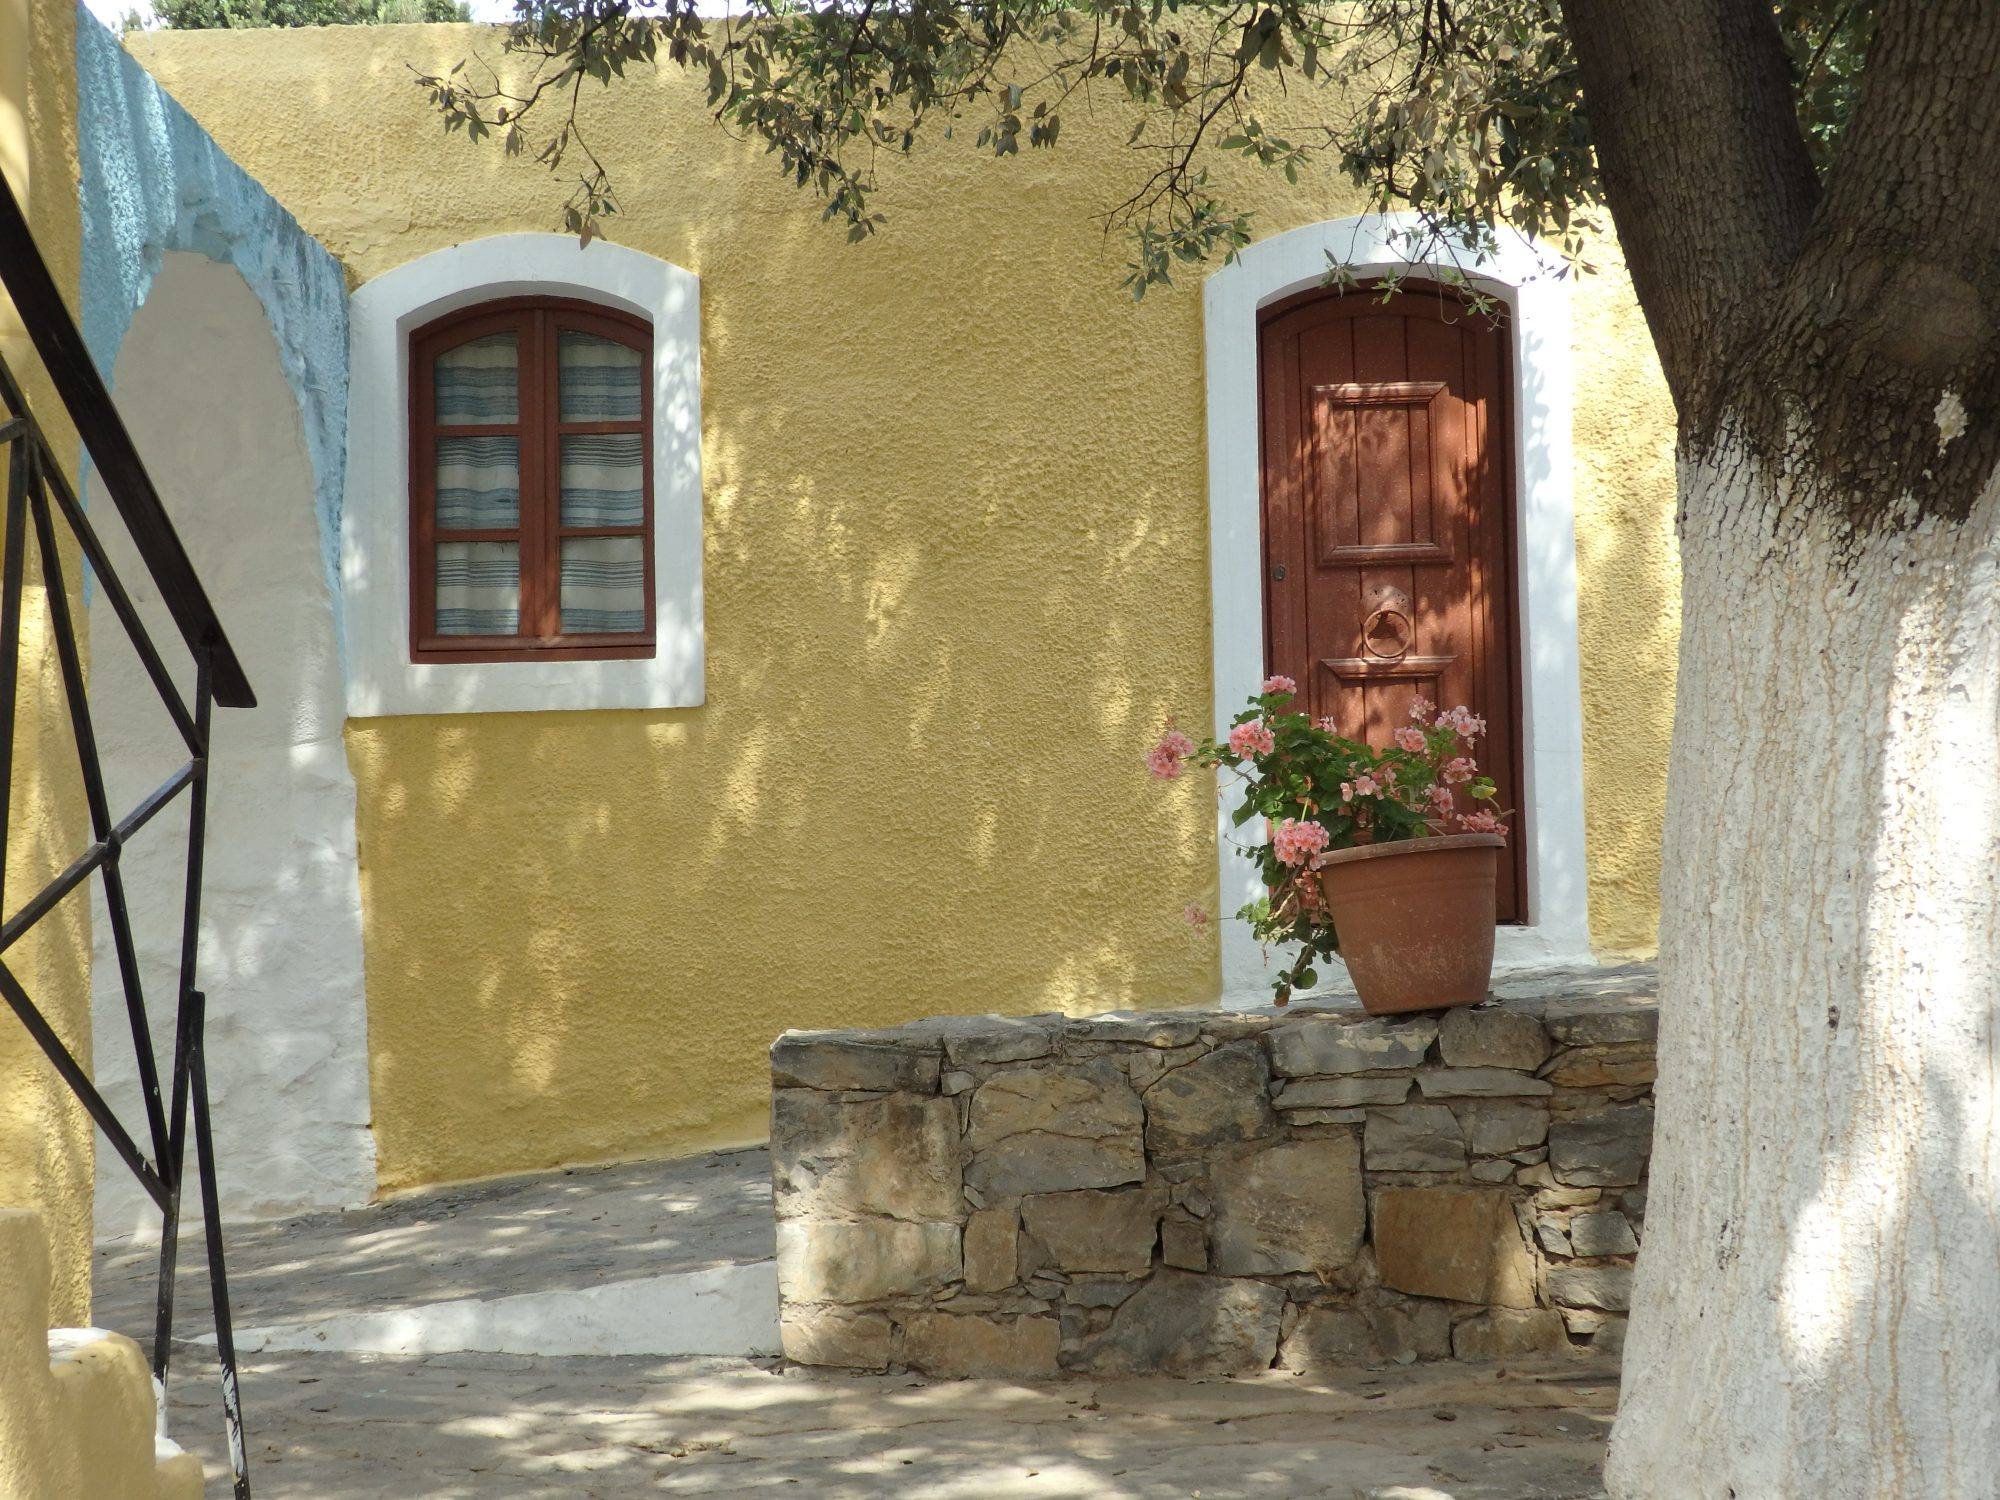 in Arolithos village